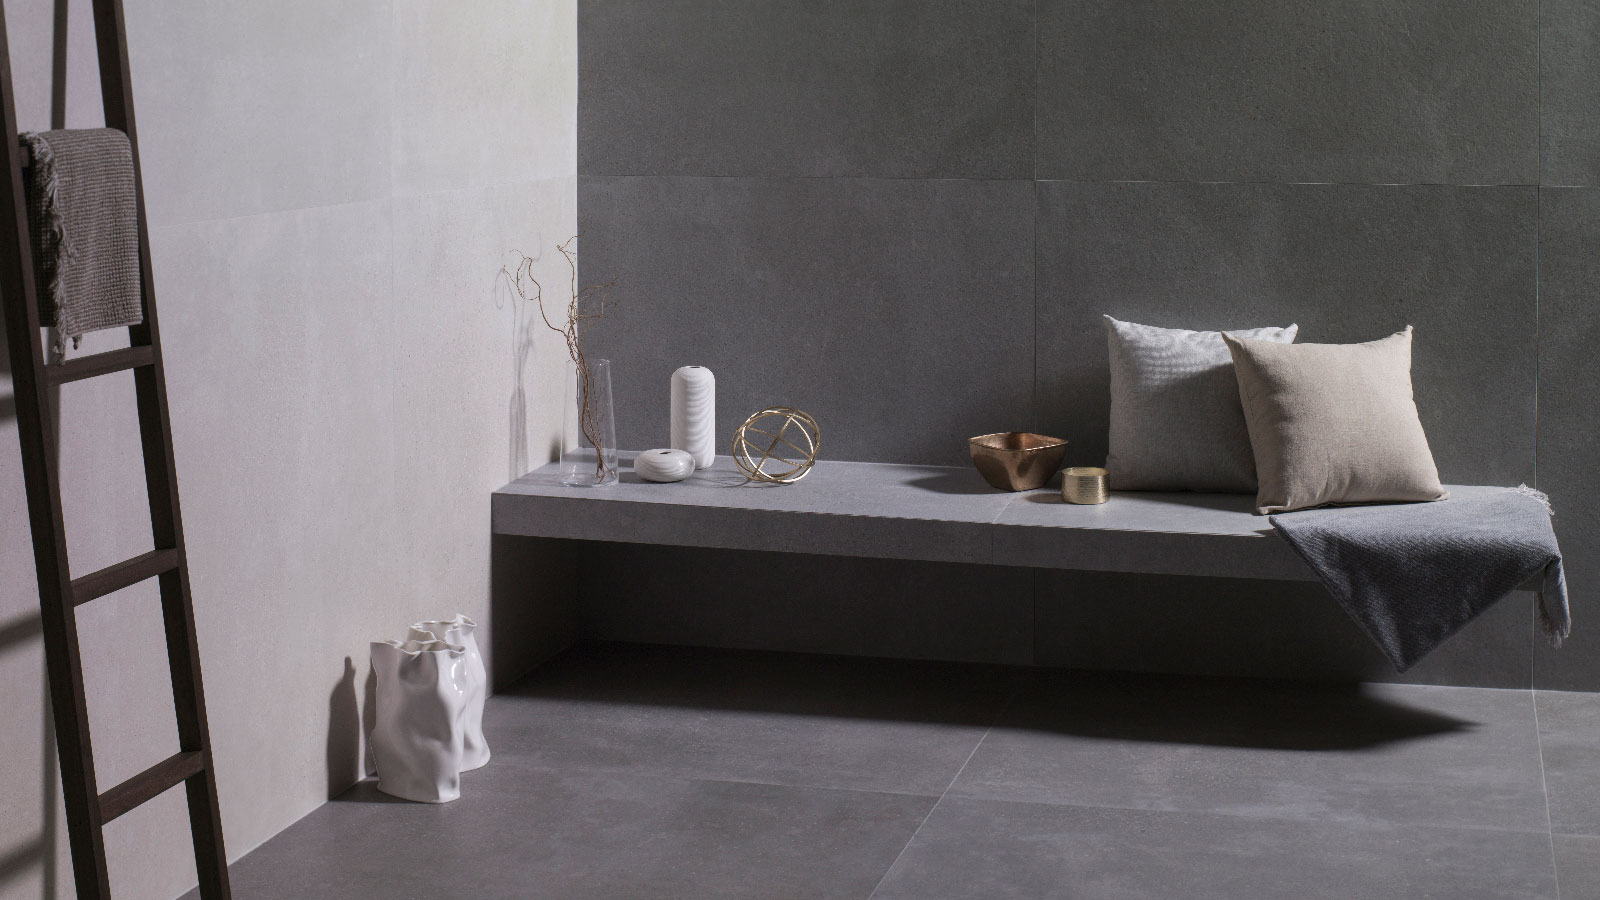 Porcelanosa reinvents itself at Cersaie with the HighKer large-format ceramic